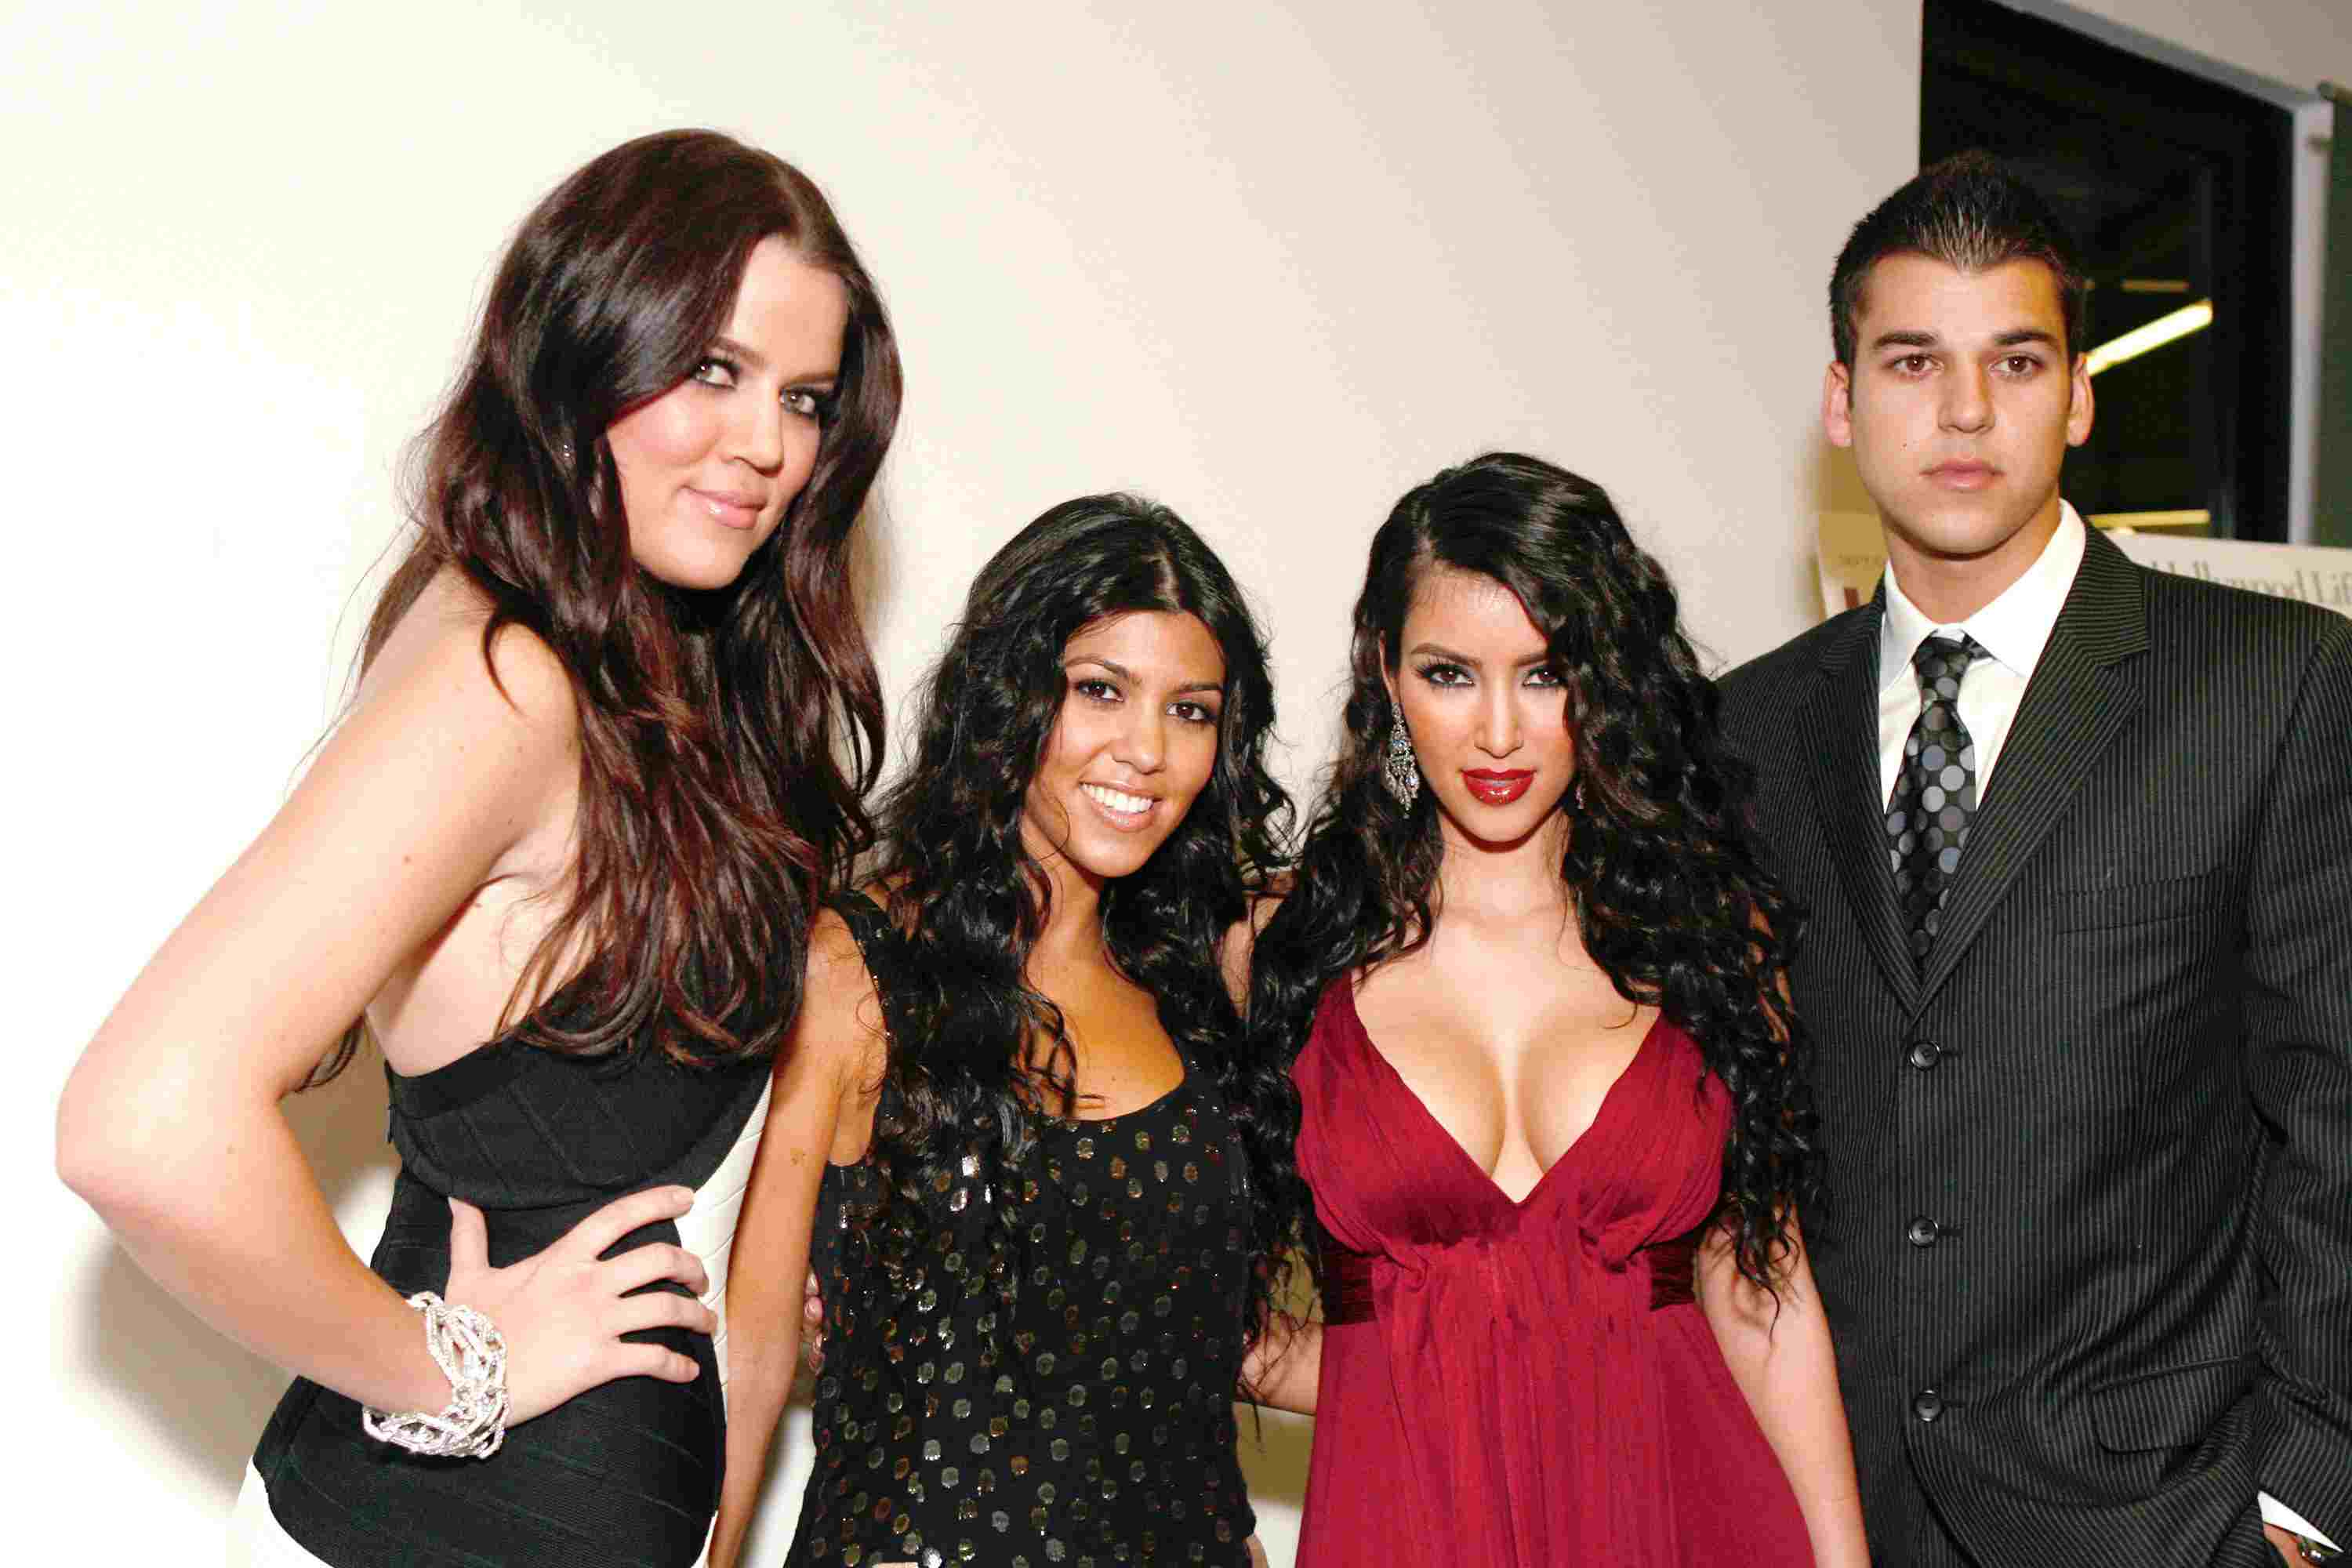 Kardashian Family Questions Answered